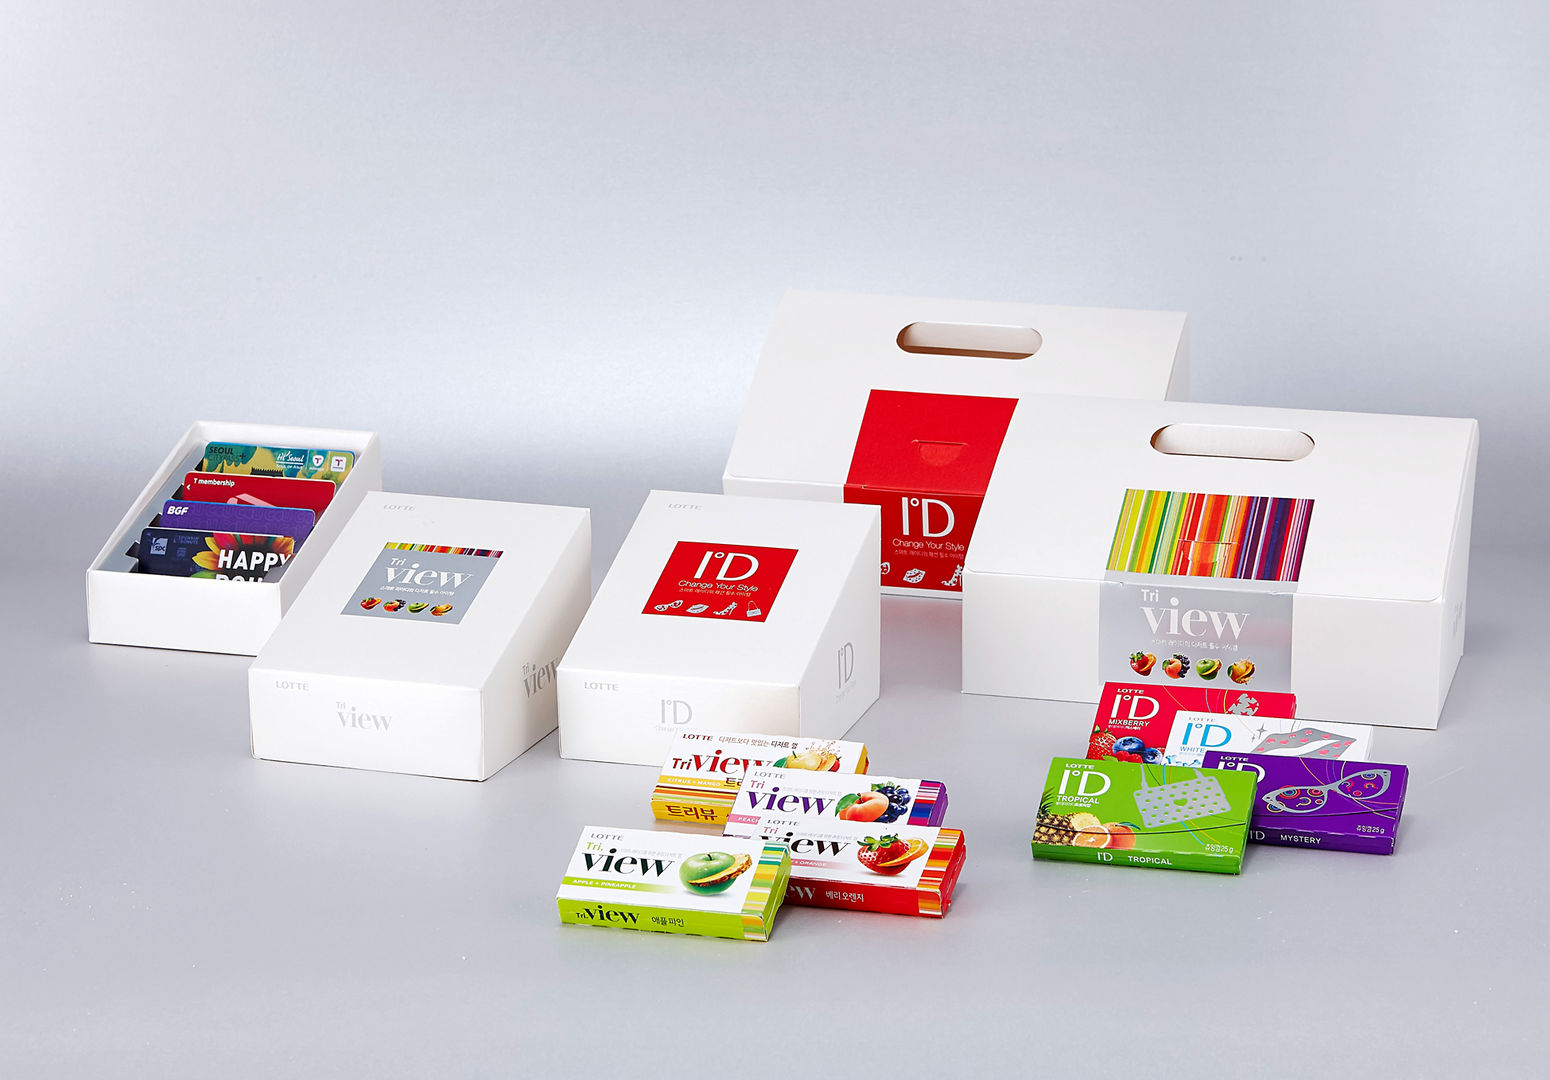 The new ID gum is a sub-brand of Stride but it goes much further. Its portfolio style packaging is similar to Stride but it's way cooler. It opens by pulling and turning the ID brand identity, revealing graffiti-style graphics when opened.